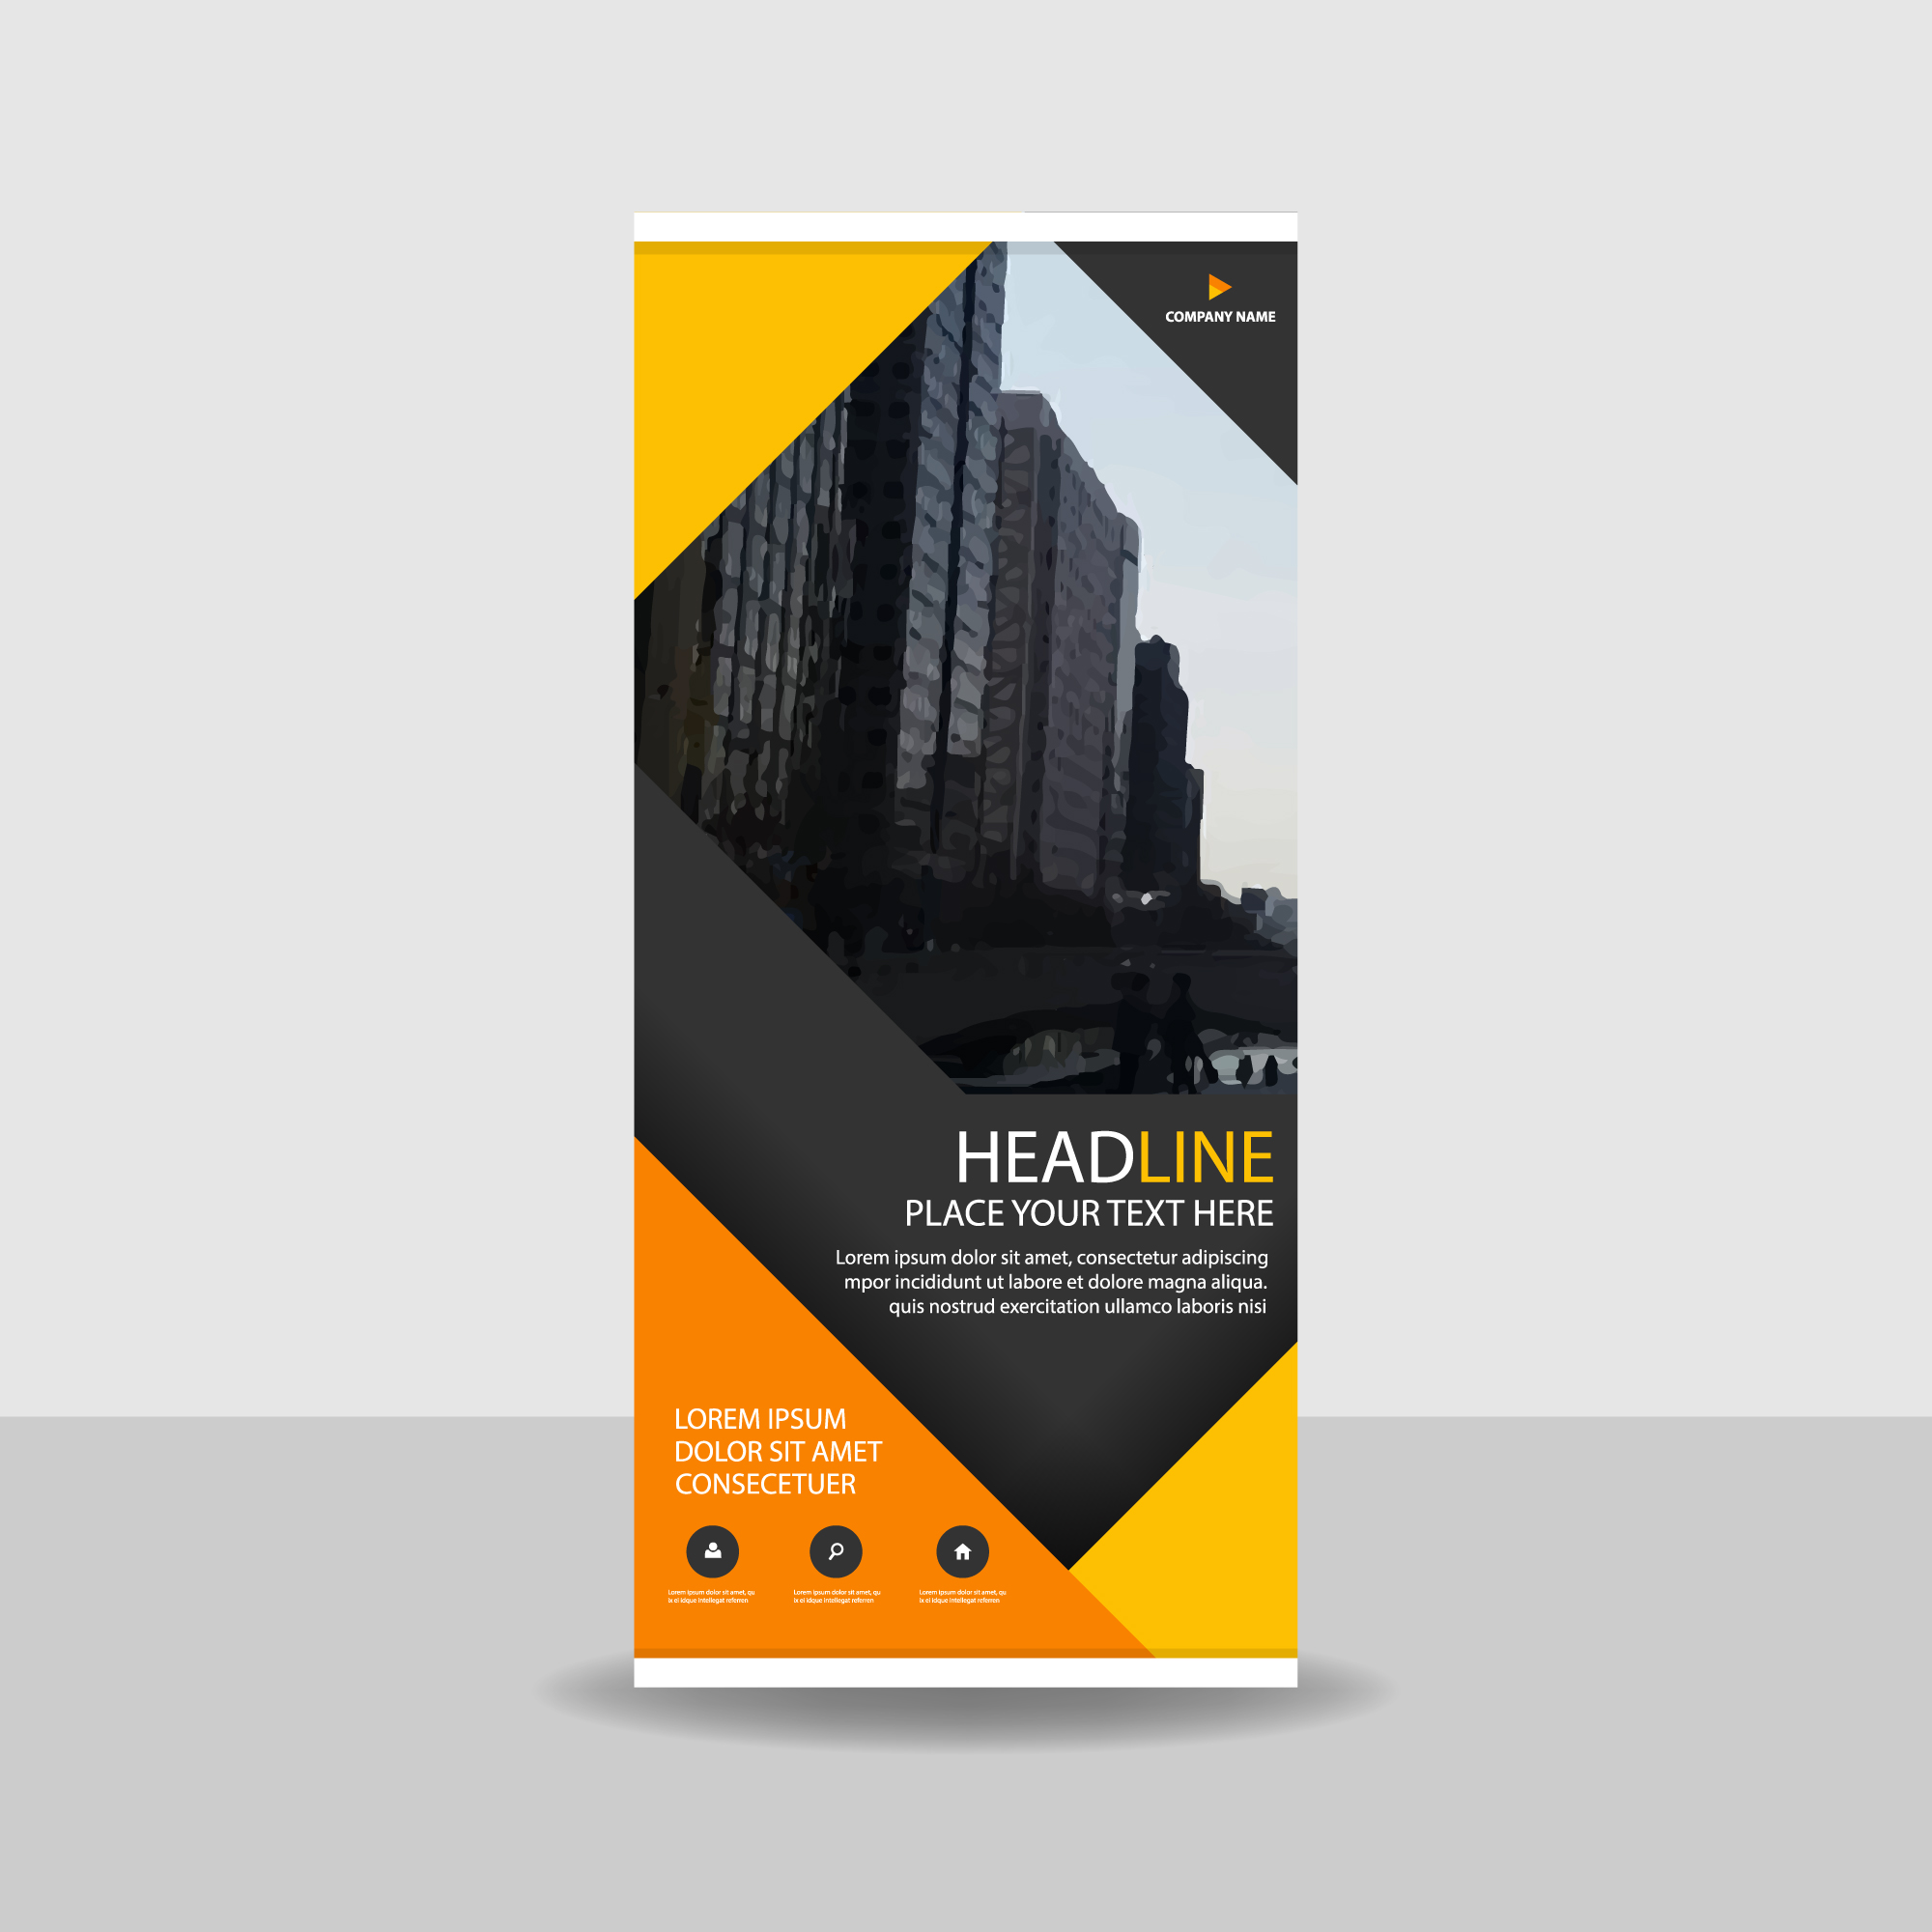 Orange Dreieck kreative Roll up Banner Vorlage